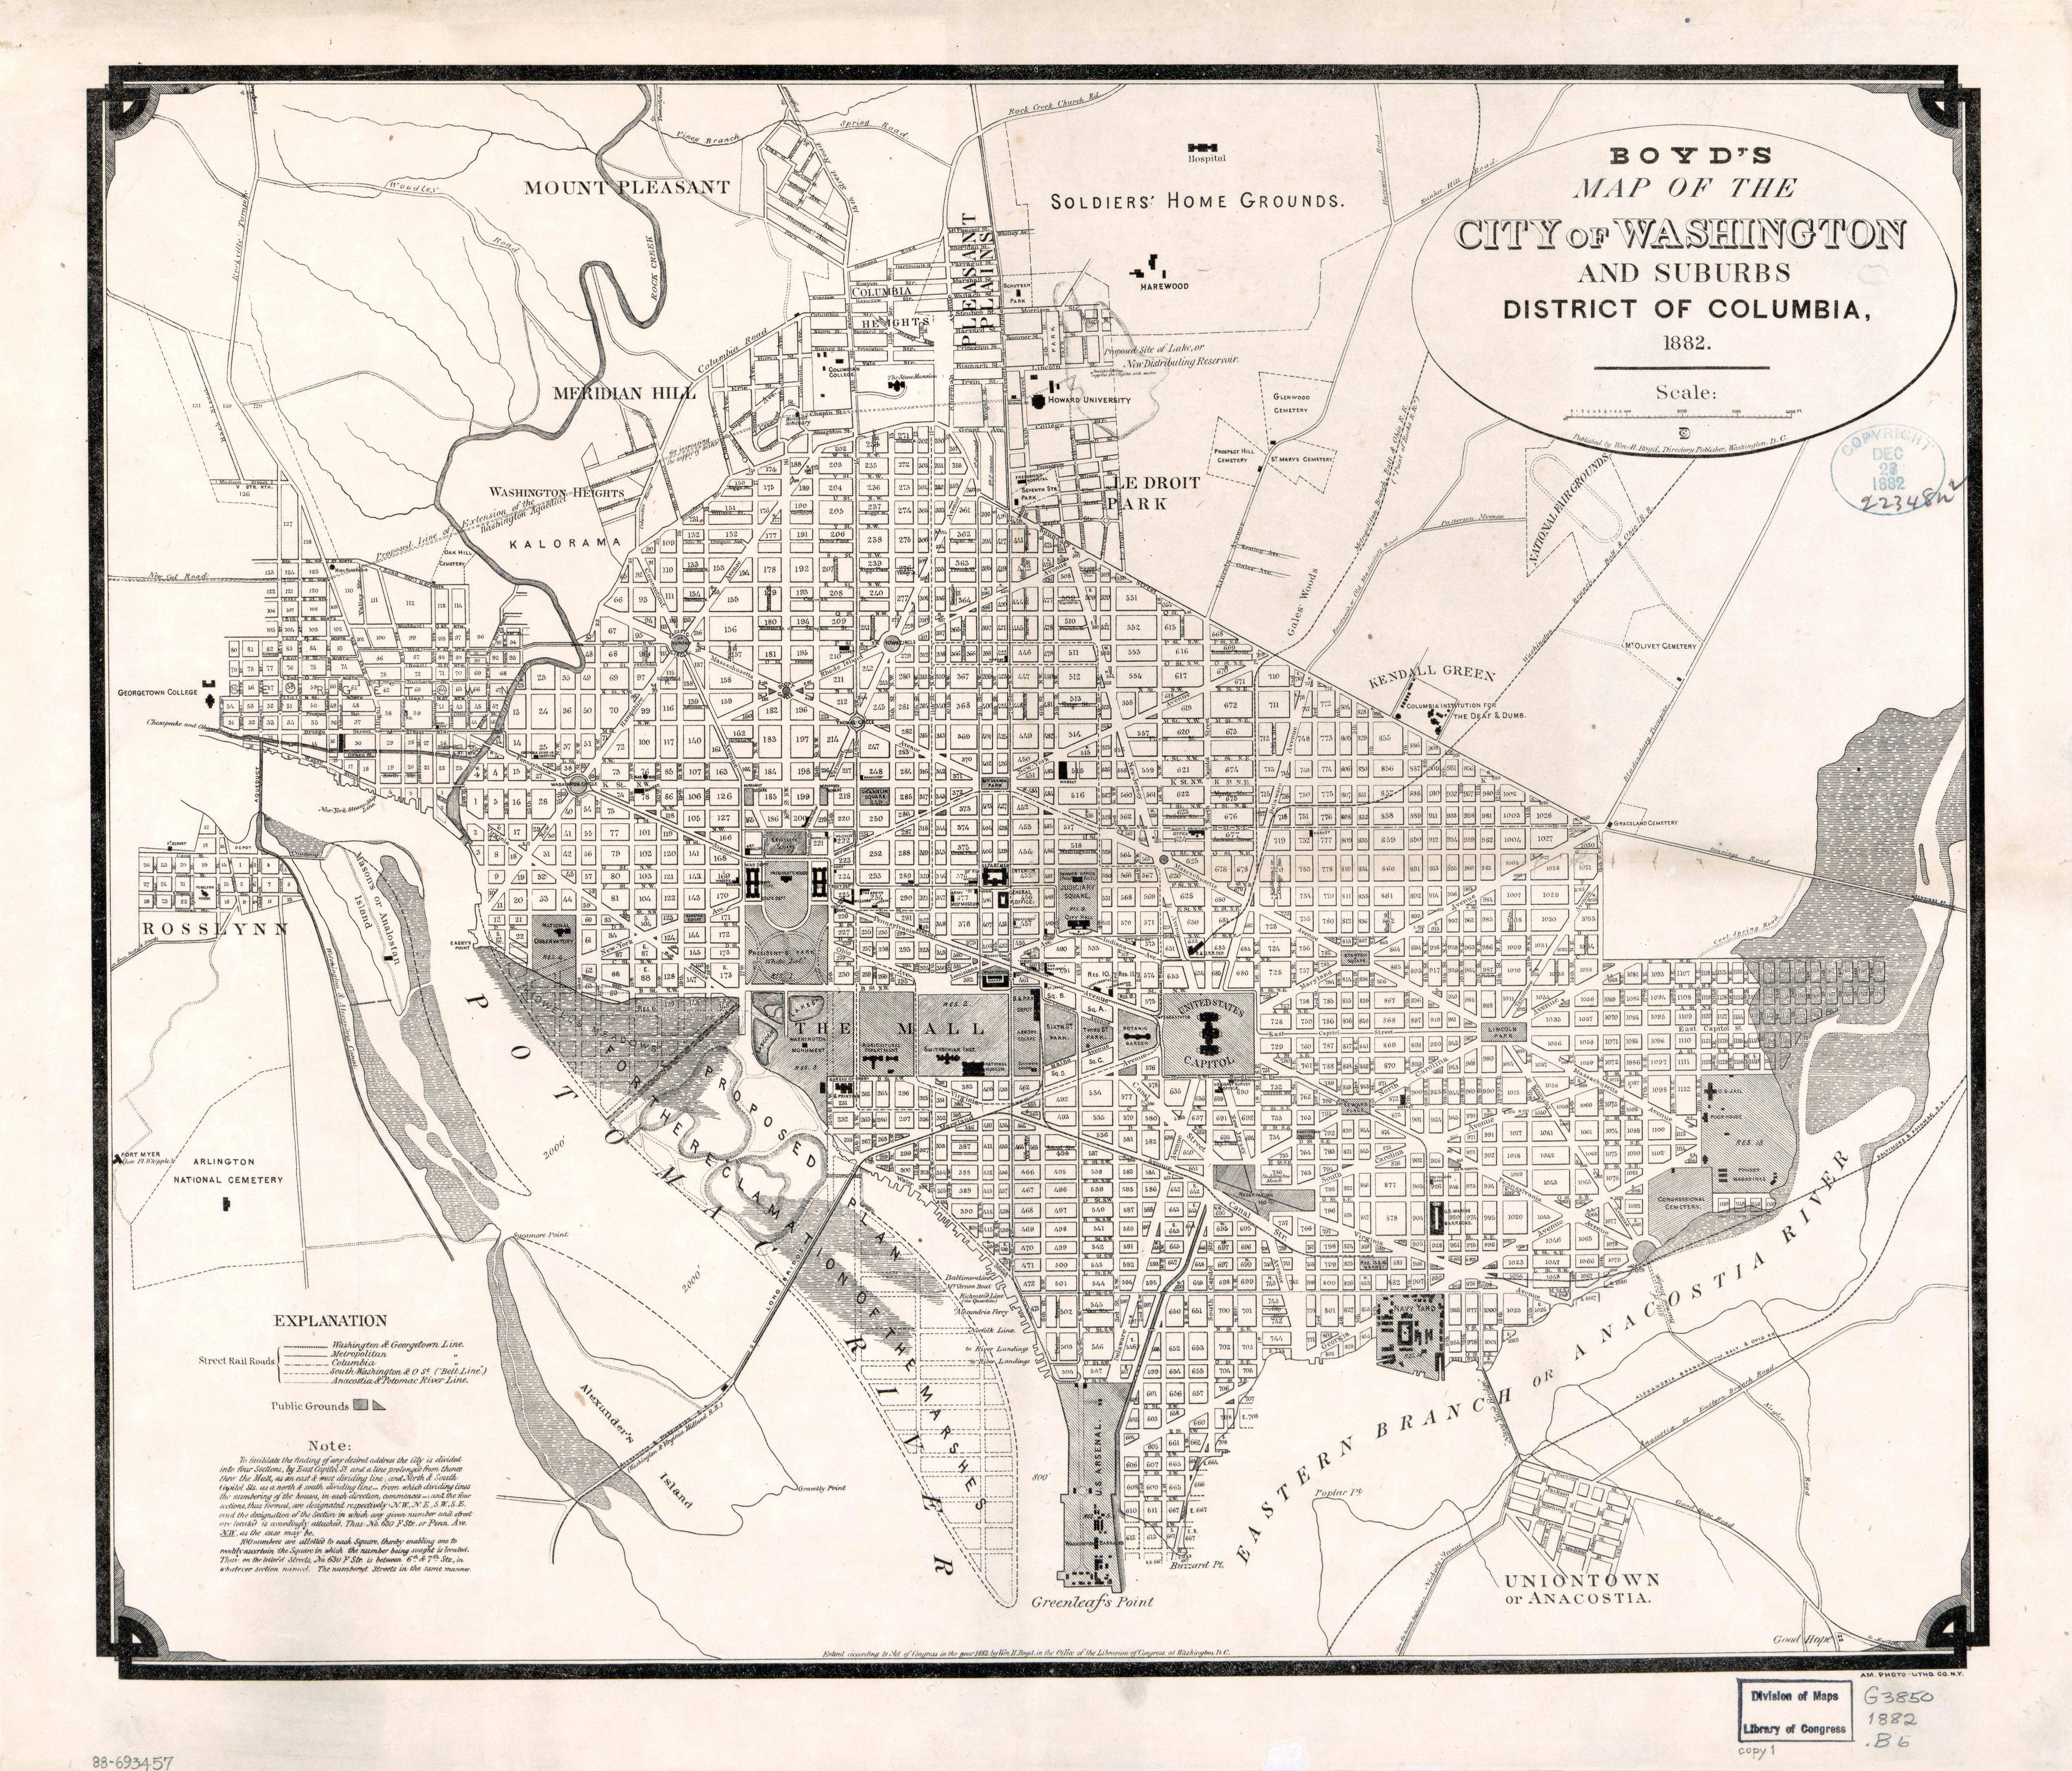 Large detailed old map of the city of Washington and suburbs ... on map of the raleigh durham area, map of the outer banks nc area, map of the hampton roads va area, map of downtown washington dc, map of dc and surrounding areas, map of the tampa area, map of maryland and washington dc, washington dc metropolitan area, map of northern virginia dc area, map of the seattle area, map of the orlando area, map of the washington state, map of area around washington dc, map of dc and virginia, map of baltimore dc area, map of the salt lake city area, street map of dc area, map of wa dc area, map of the boston area, map of the houston area,